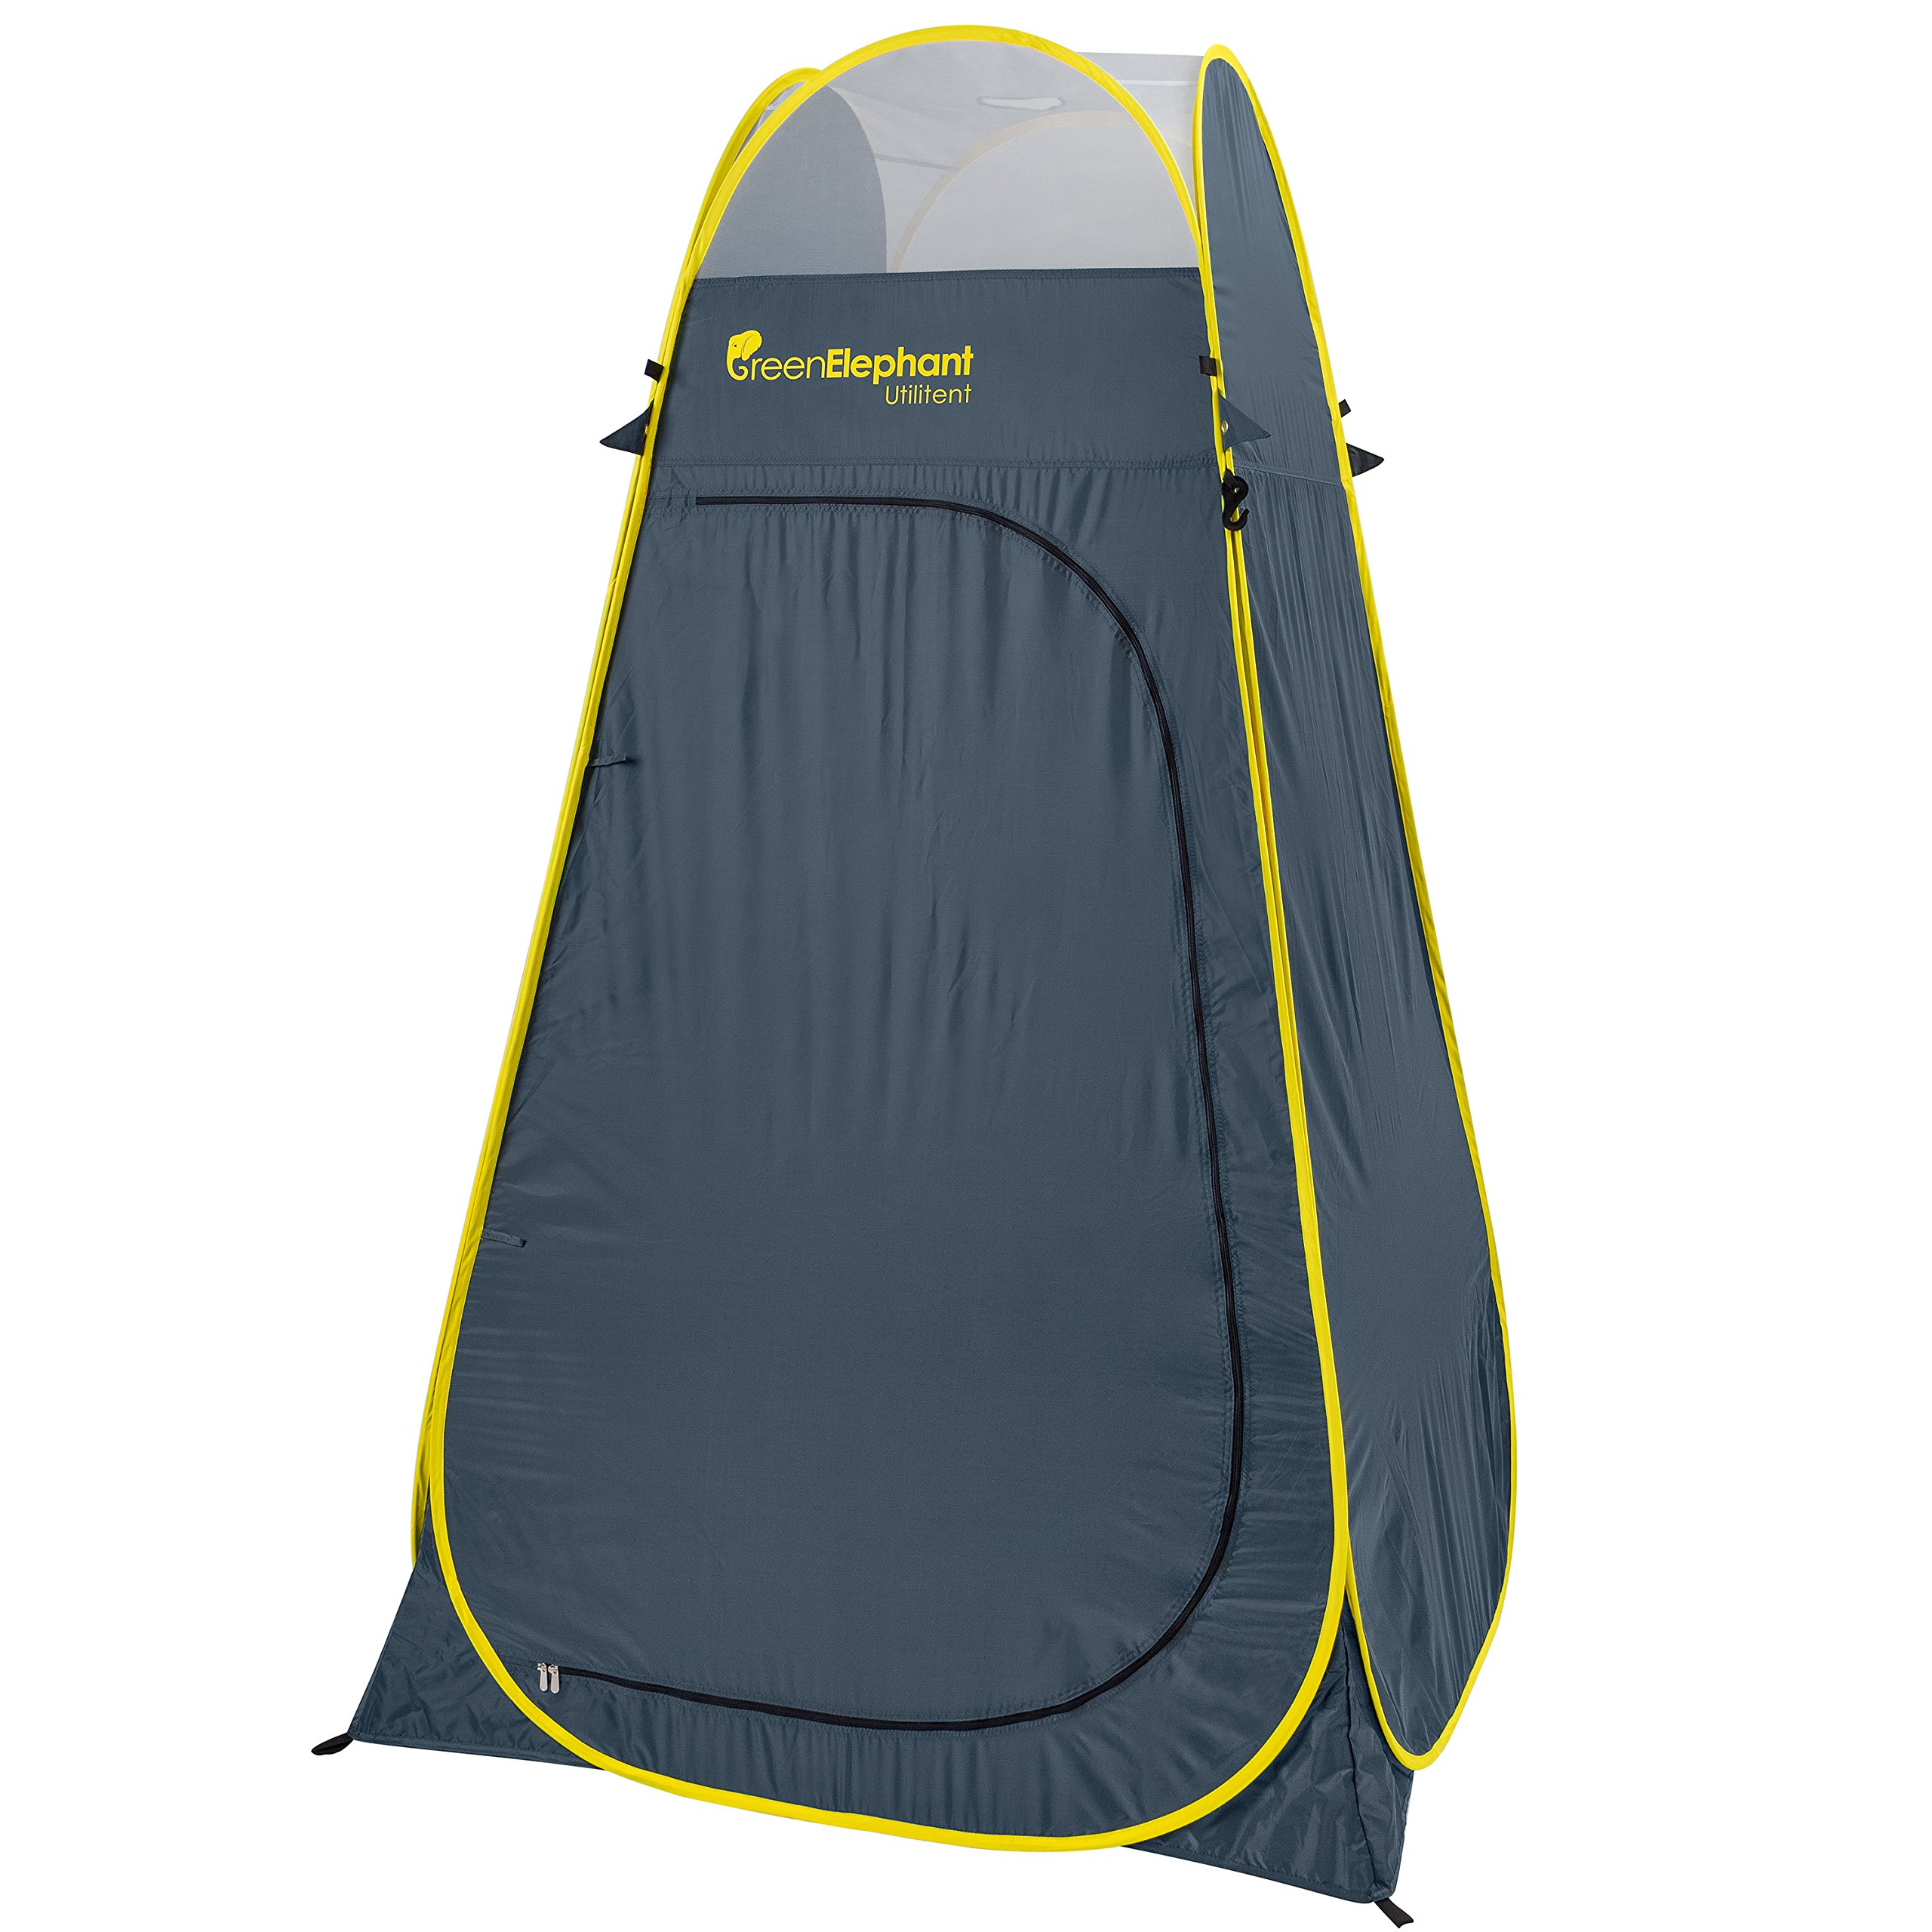 GREEN ELEPHANT Pop Up Utilitent – Privacy Portable Camping, Biking, Toilet, Shower, Beach Changing Room Extra Tall, Spacious Tent Shelter.